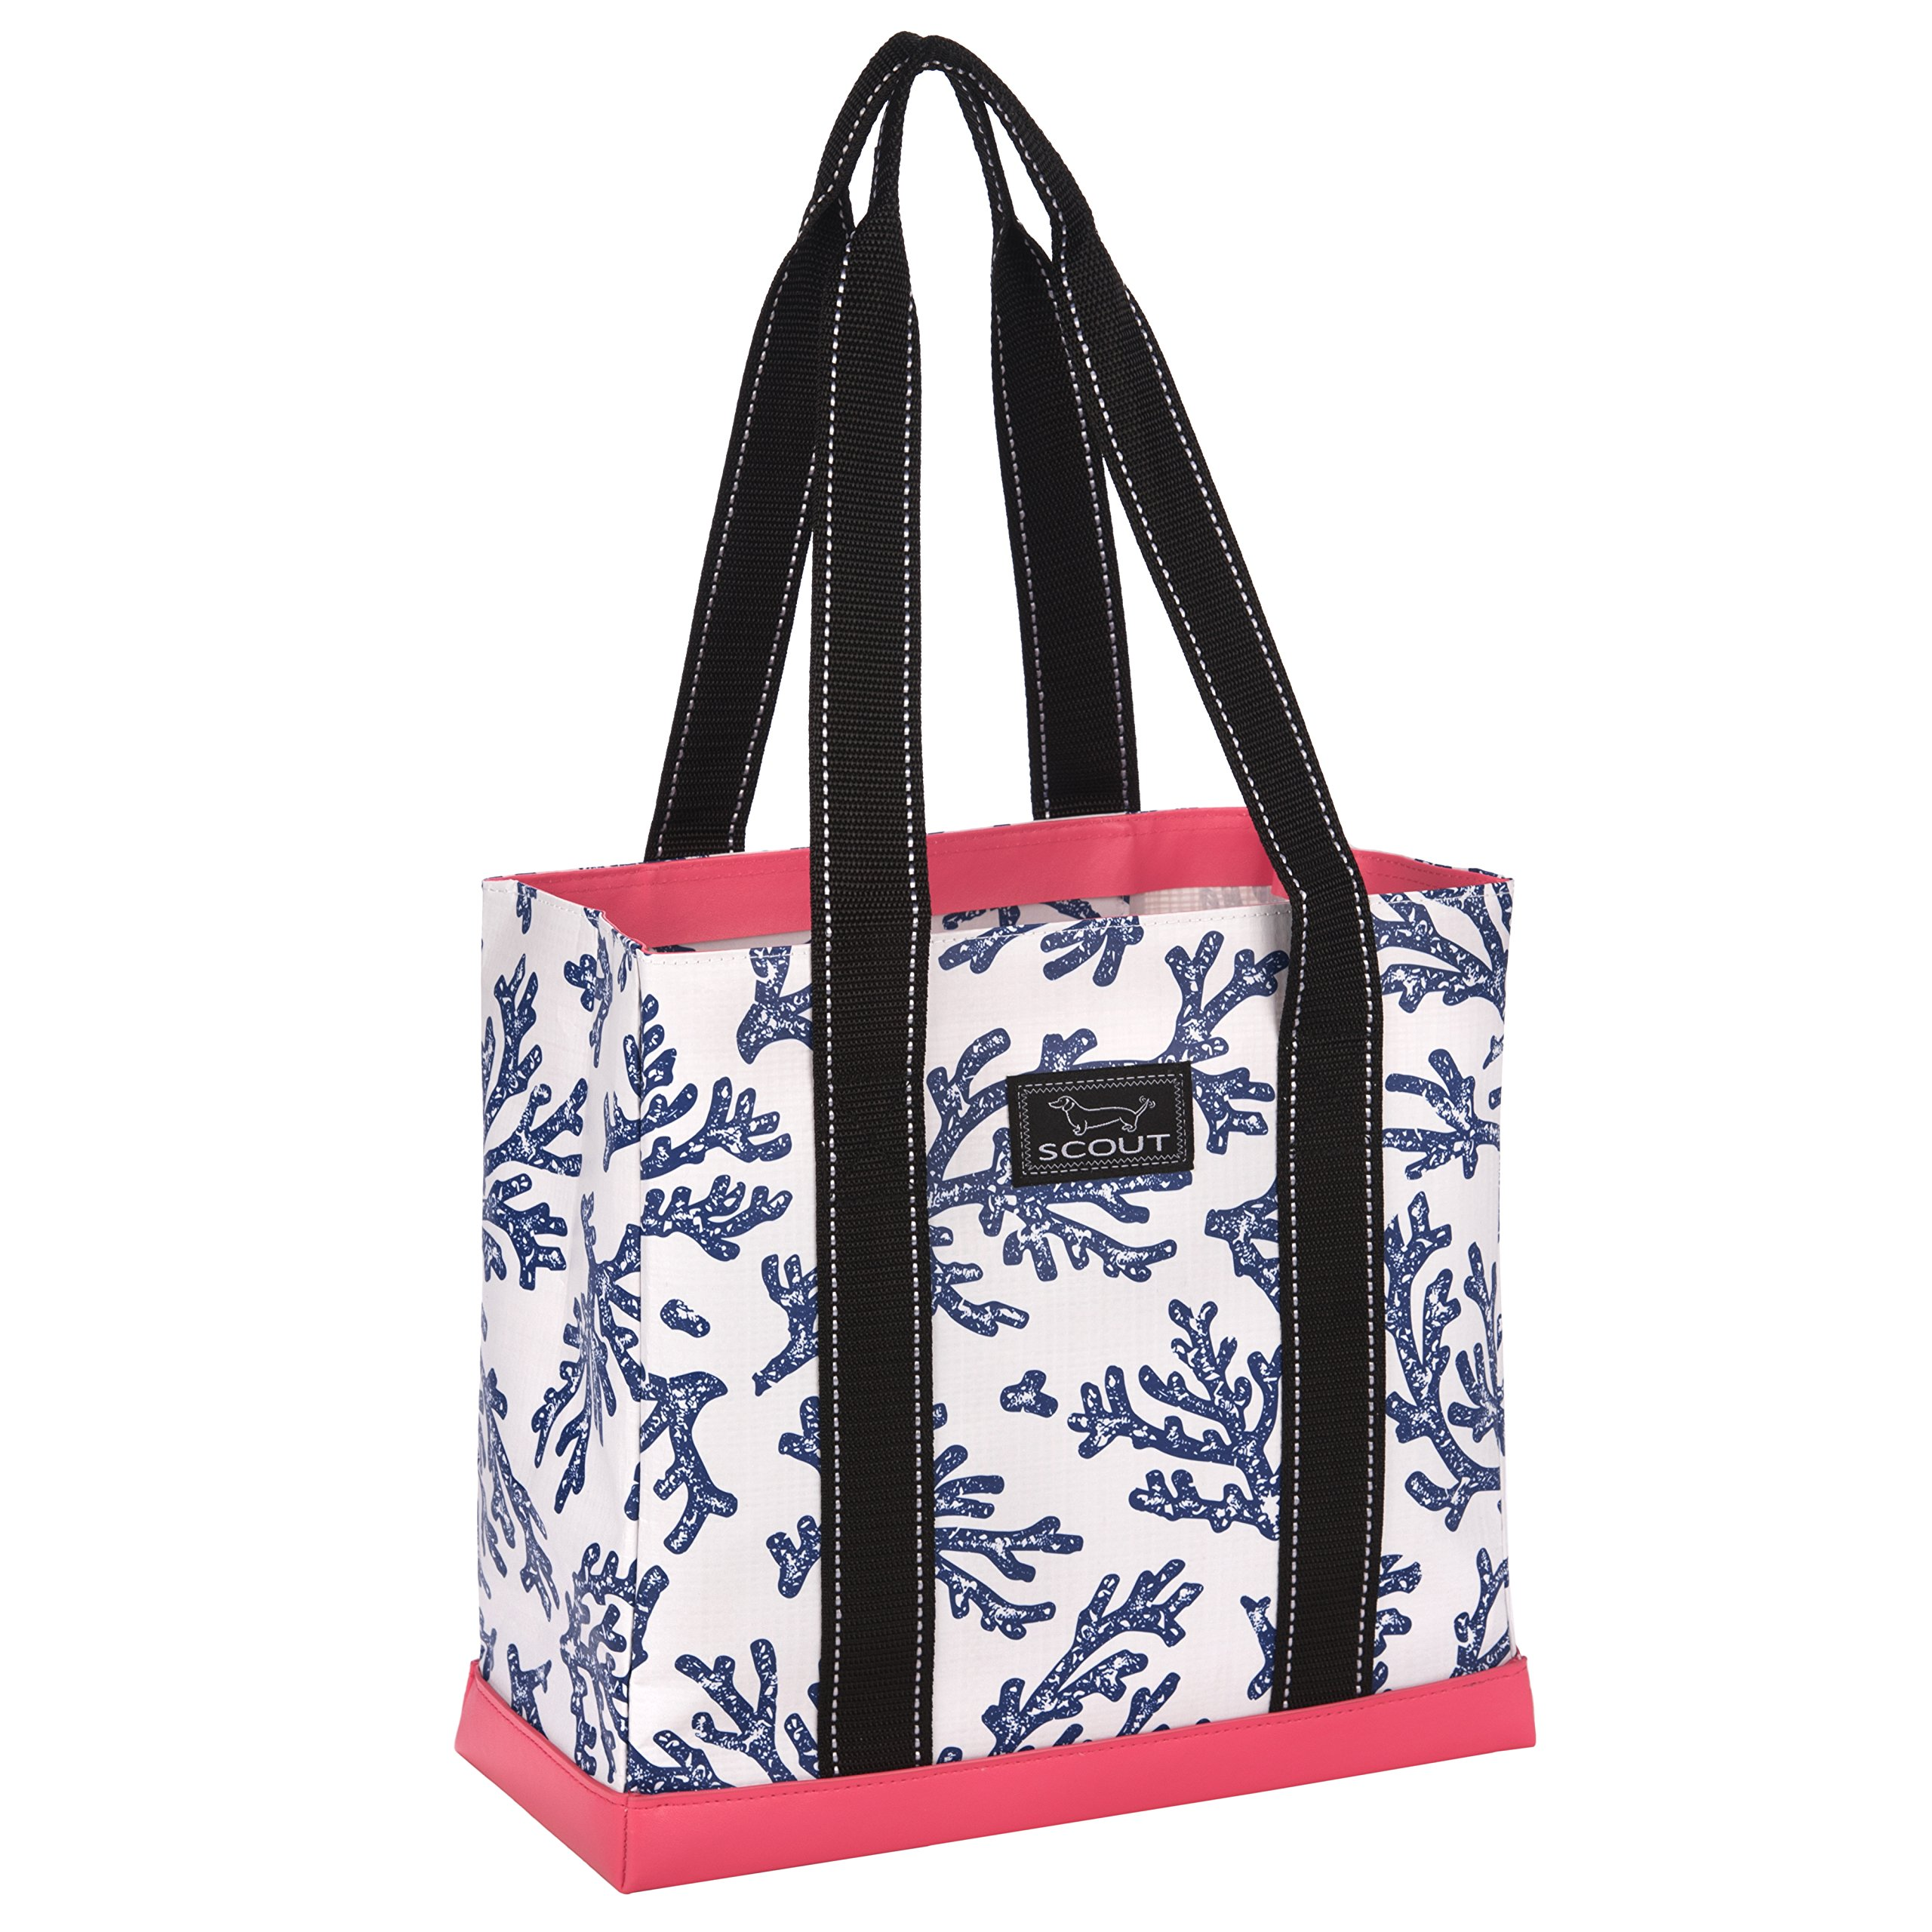 SCOUT Mini Deano Small Everyday Tote Bag, Folds Flat, Interior Zipper Pocket, Reinforced Bottom, Water Resistant, Areefa!